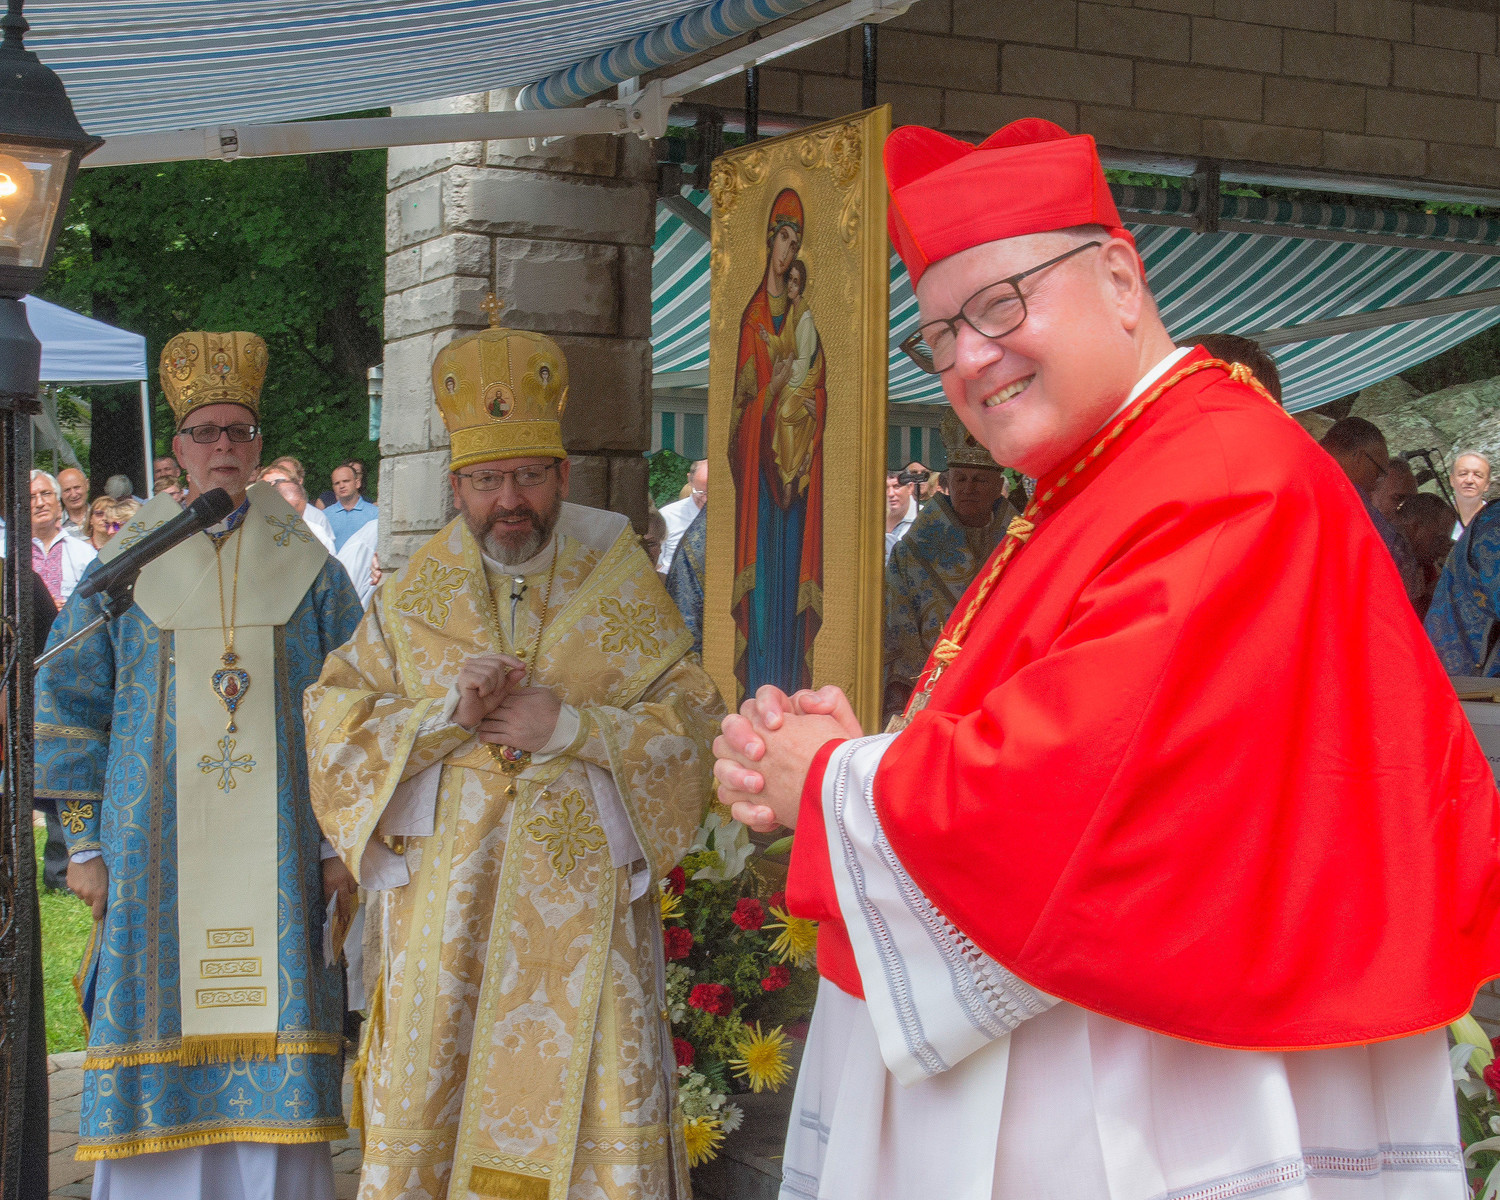 Cardinal Dolan acknowledges the greeting by Archbishop Shevchuk.